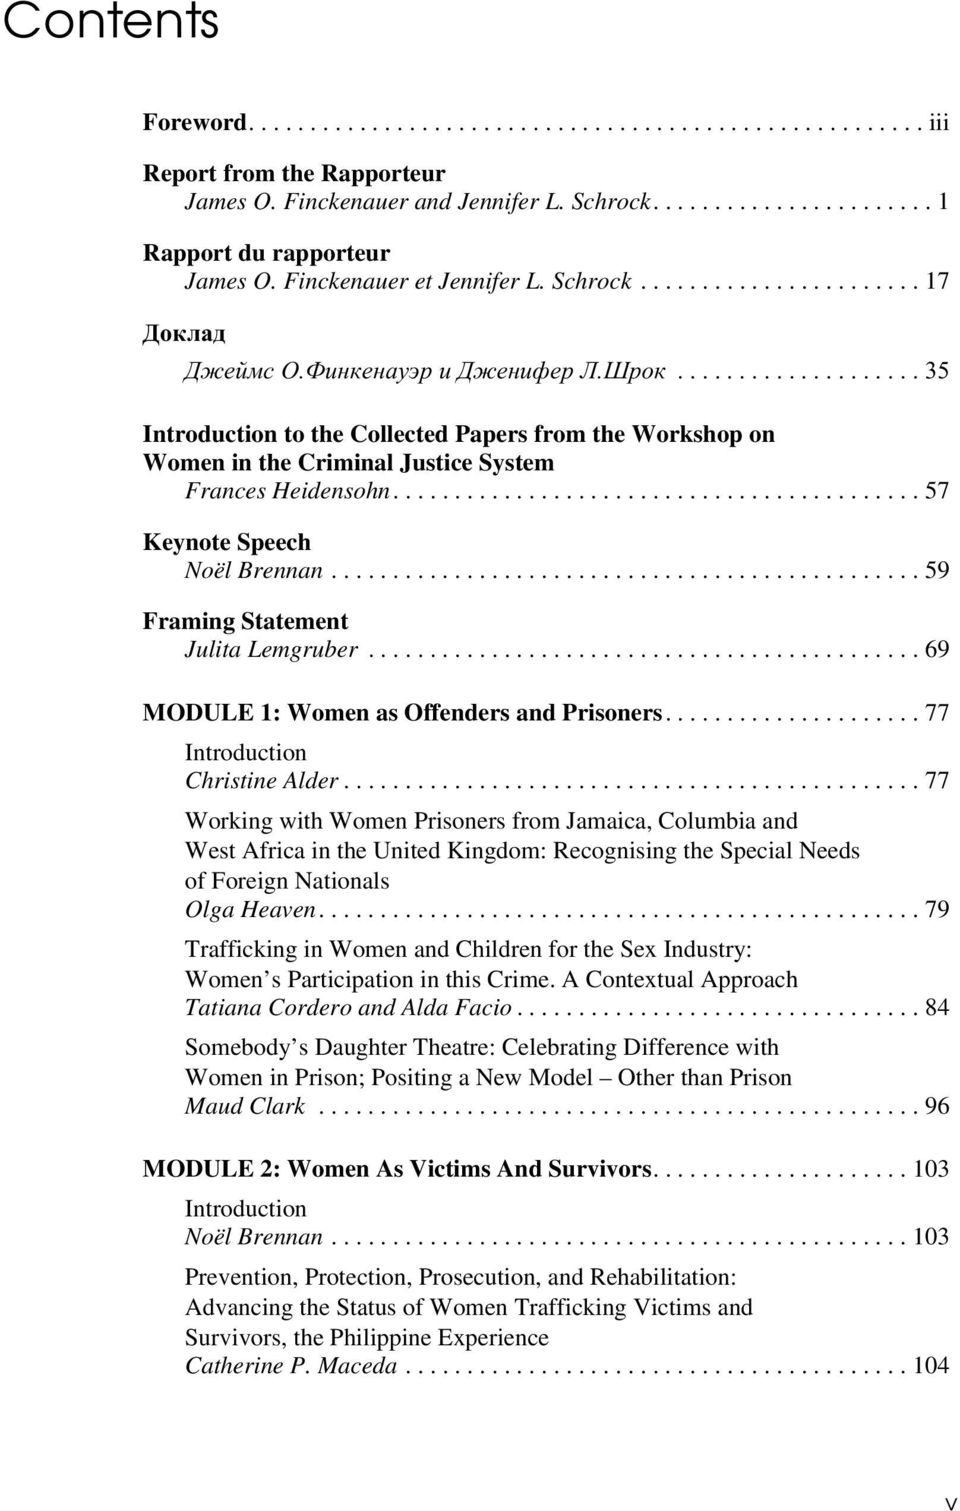 ................... 35 Introduction to the Collected Papers from the Workshop on Women in the Criminal Justice System Frances Heidensohn........................................... 57 Keynote Speech Noël Brennan.